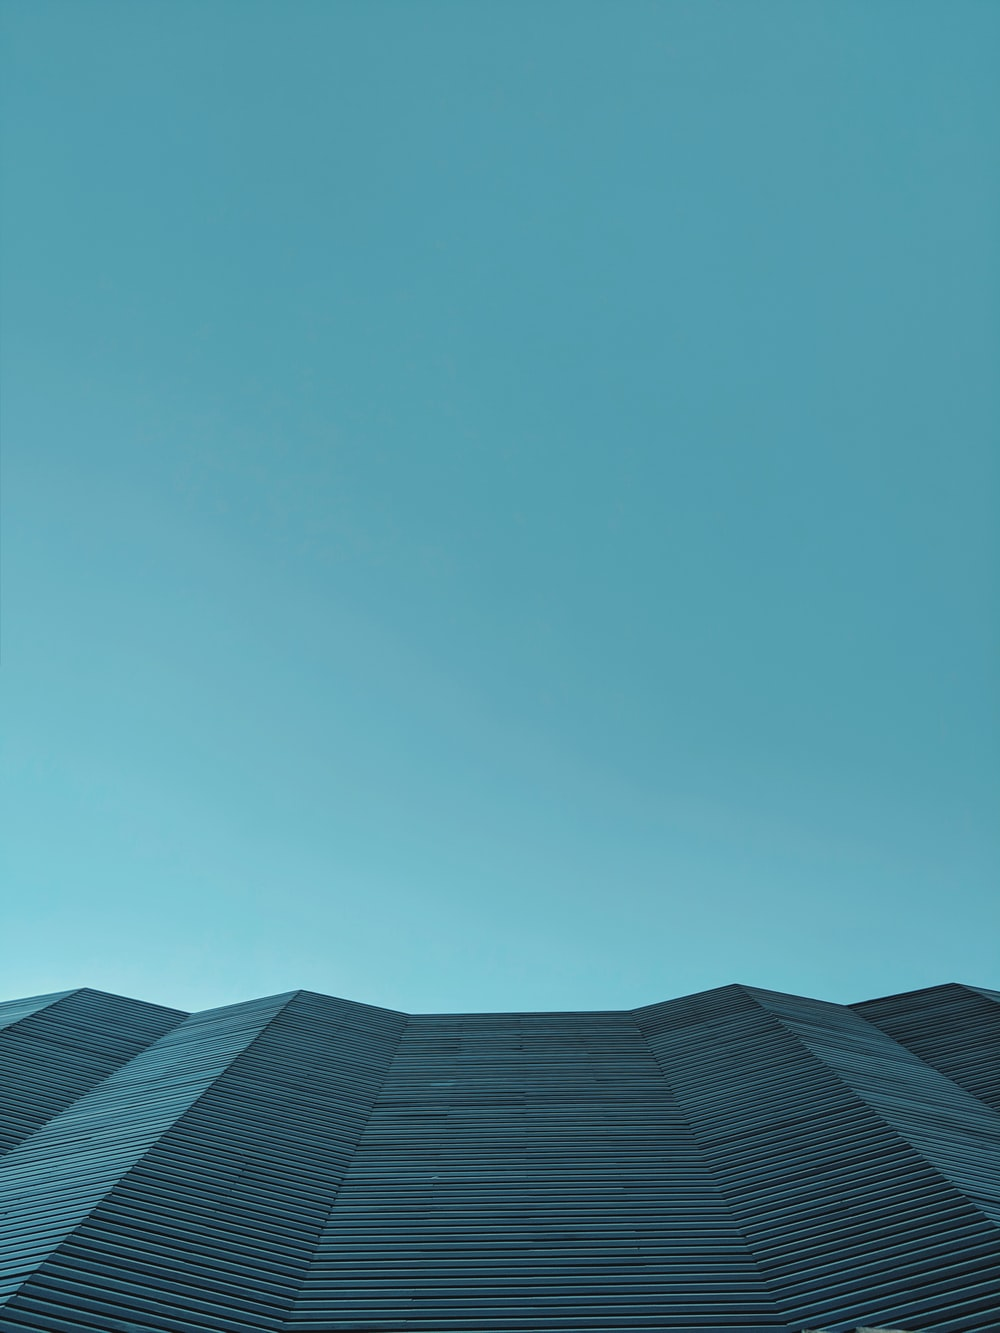 low-angle photography of gray structure under calm blue sky